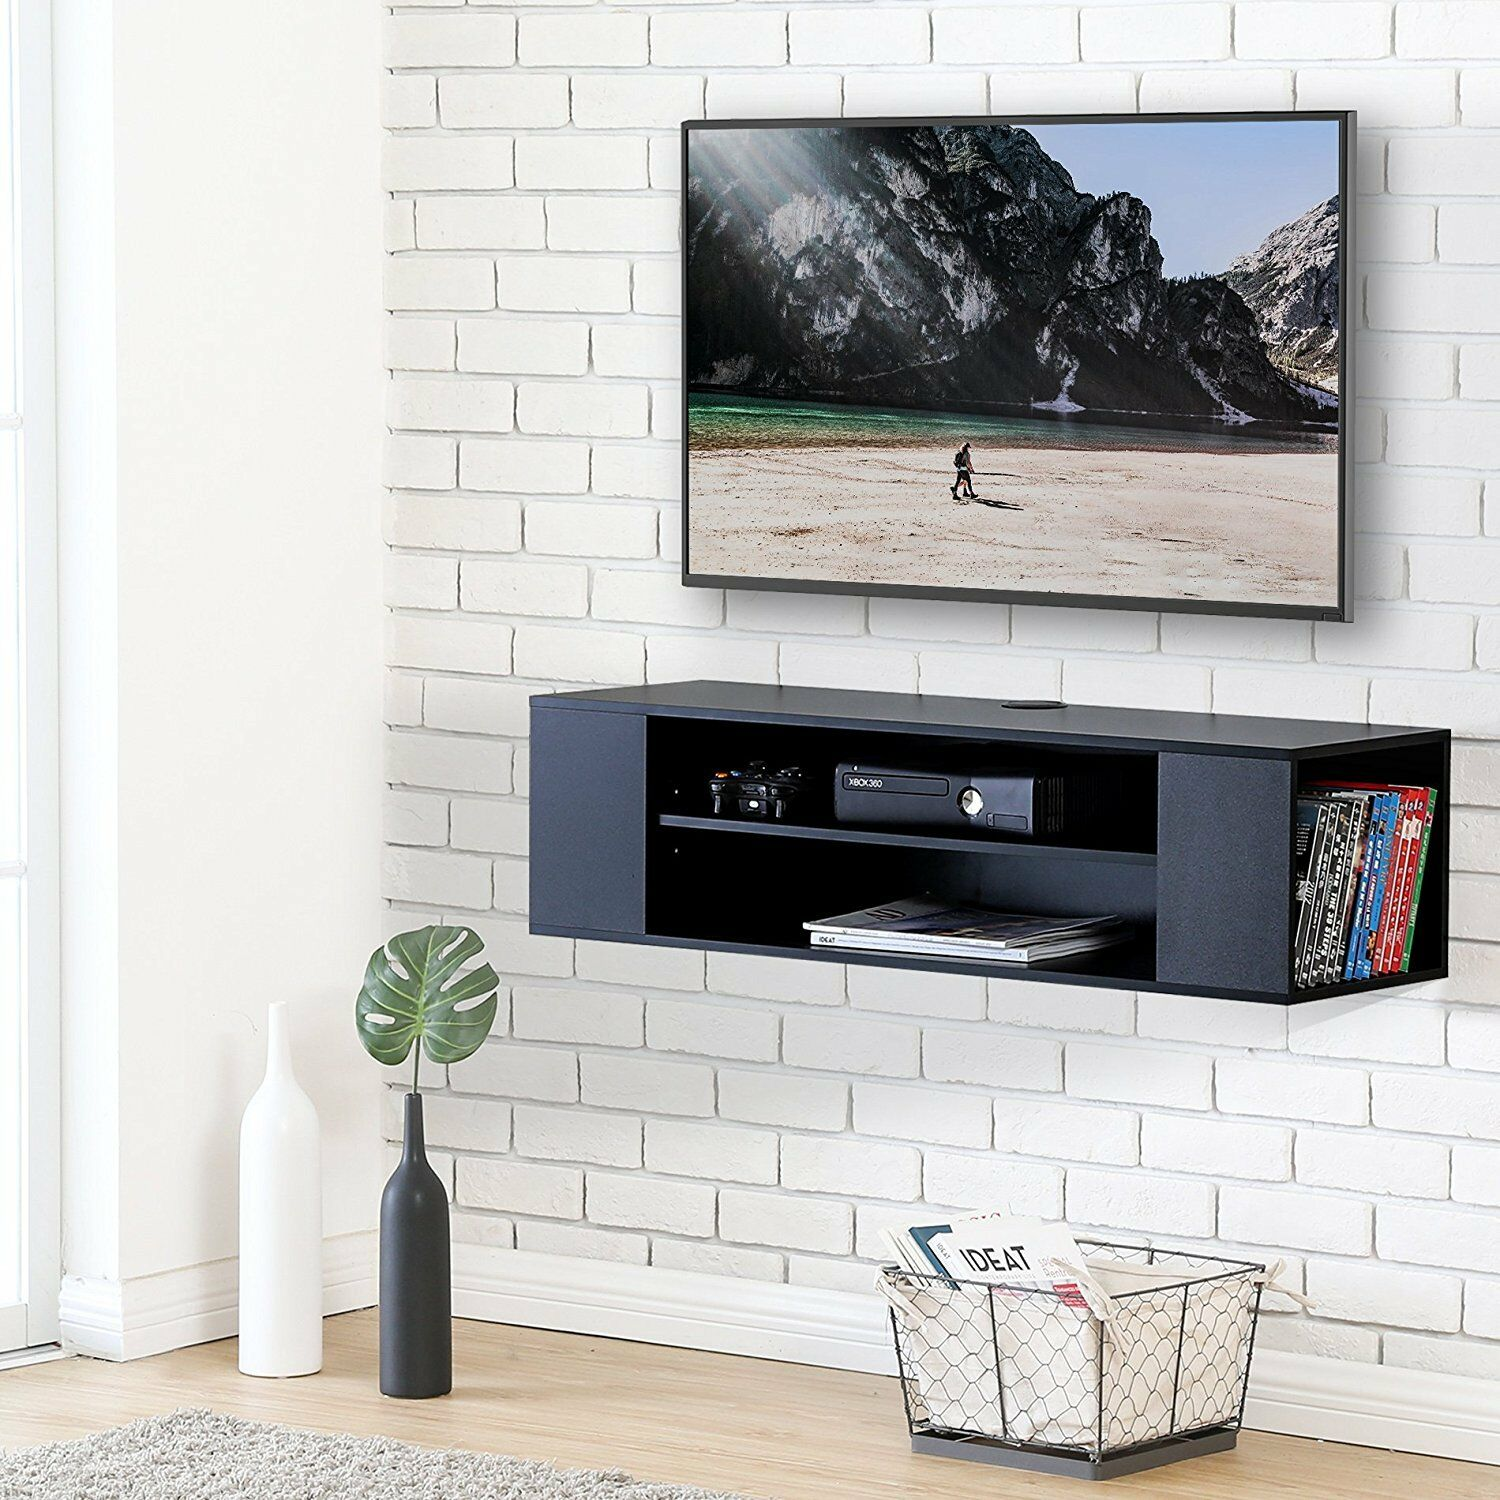 Sleek Floating Tv Stand Wall Mounted Media Console Entertainment Center Avshelves Shipping See More Floating Tv Stand Wall Mounted Media Console Entertainment Center Av houzz-02 Wall Mounted Media Console